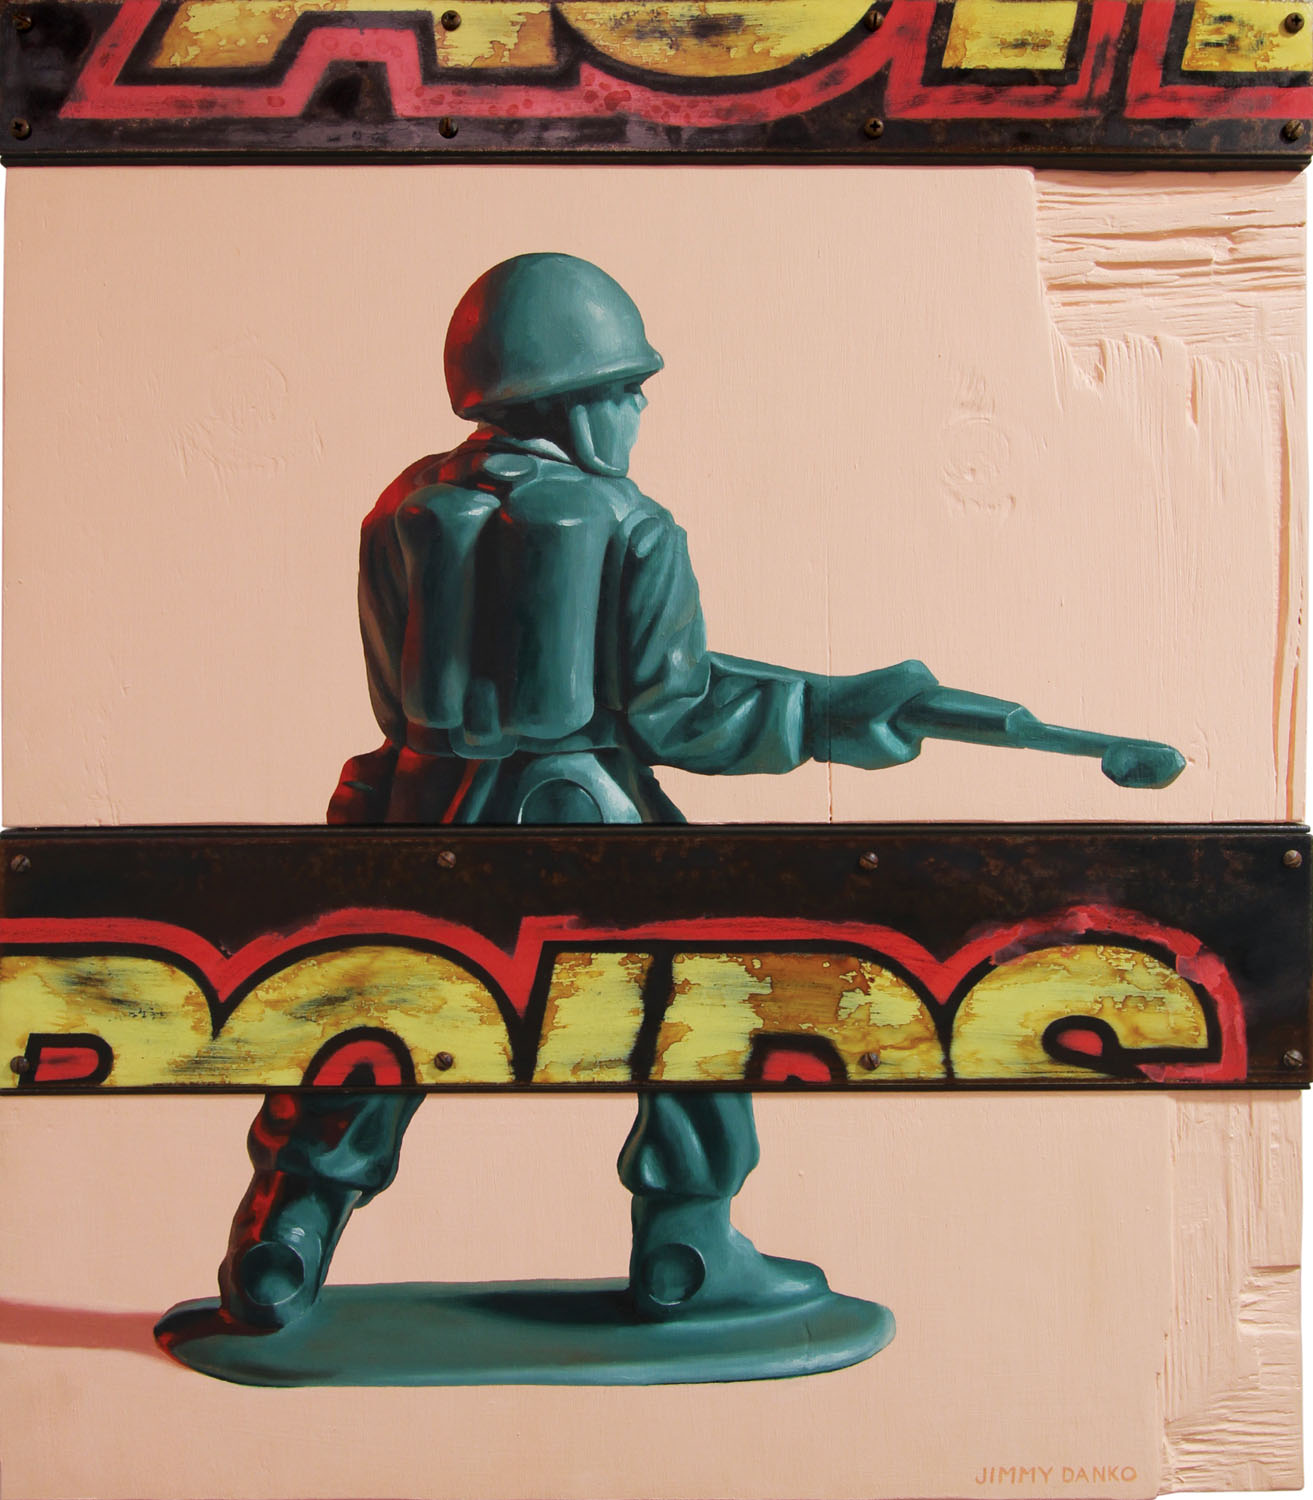 Oil painting of a plastic green army figure.